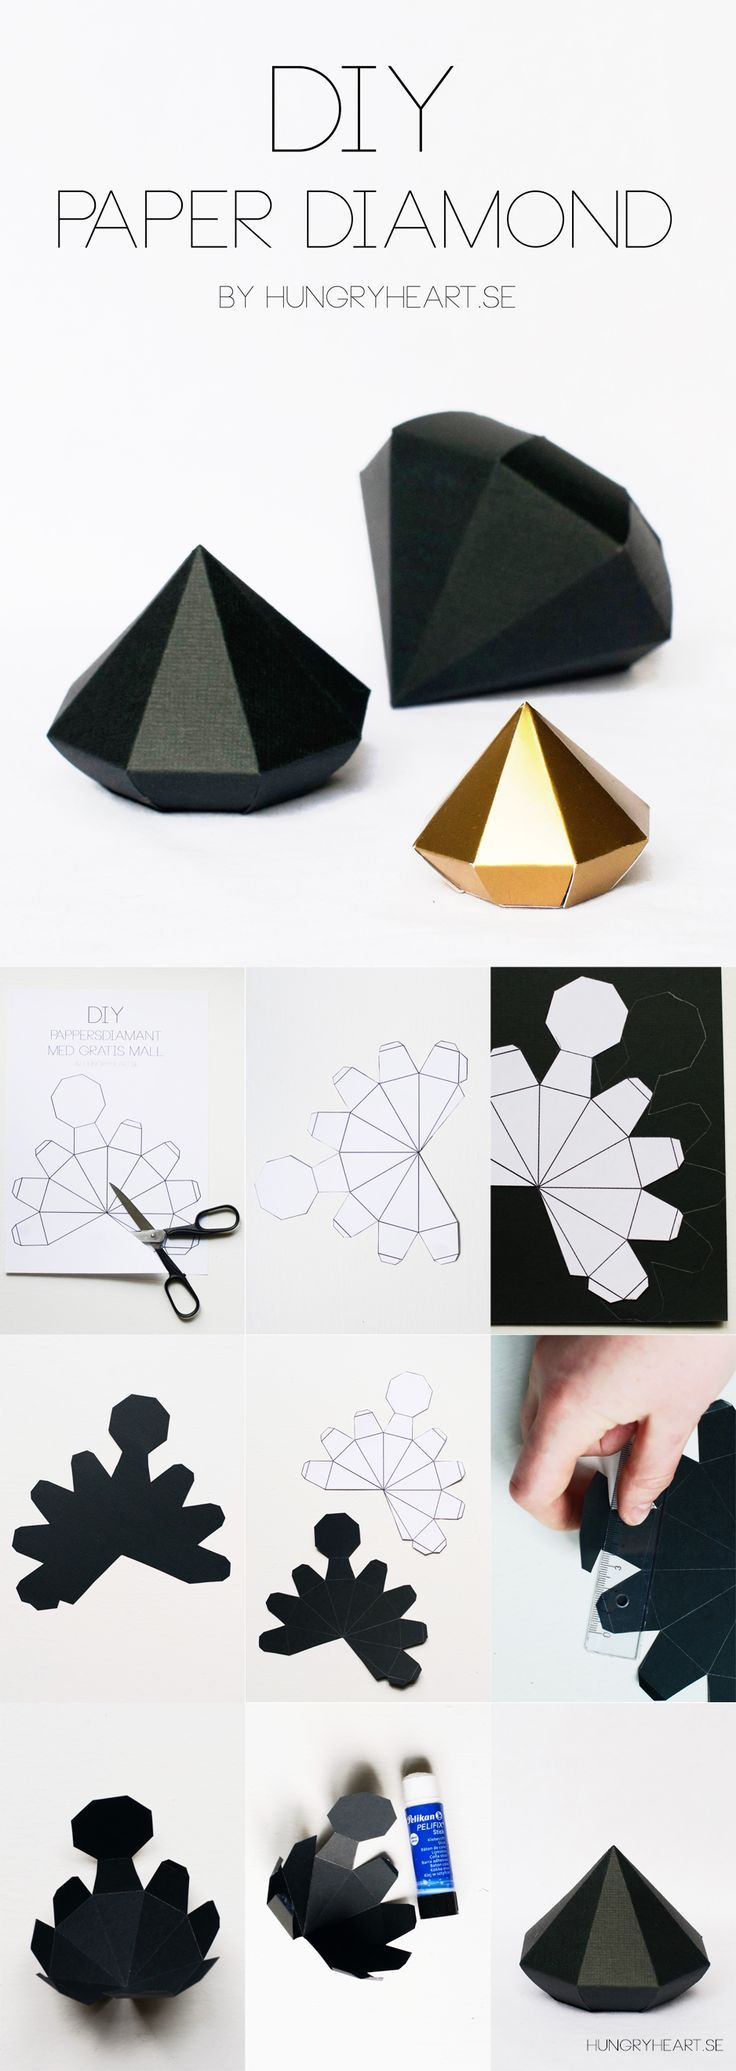 Tendance & idée Joaillerie 2016/2017 Description DIY Paper Diamond Step-by-Step Tutorial with FREE Template | HungryHeart.se